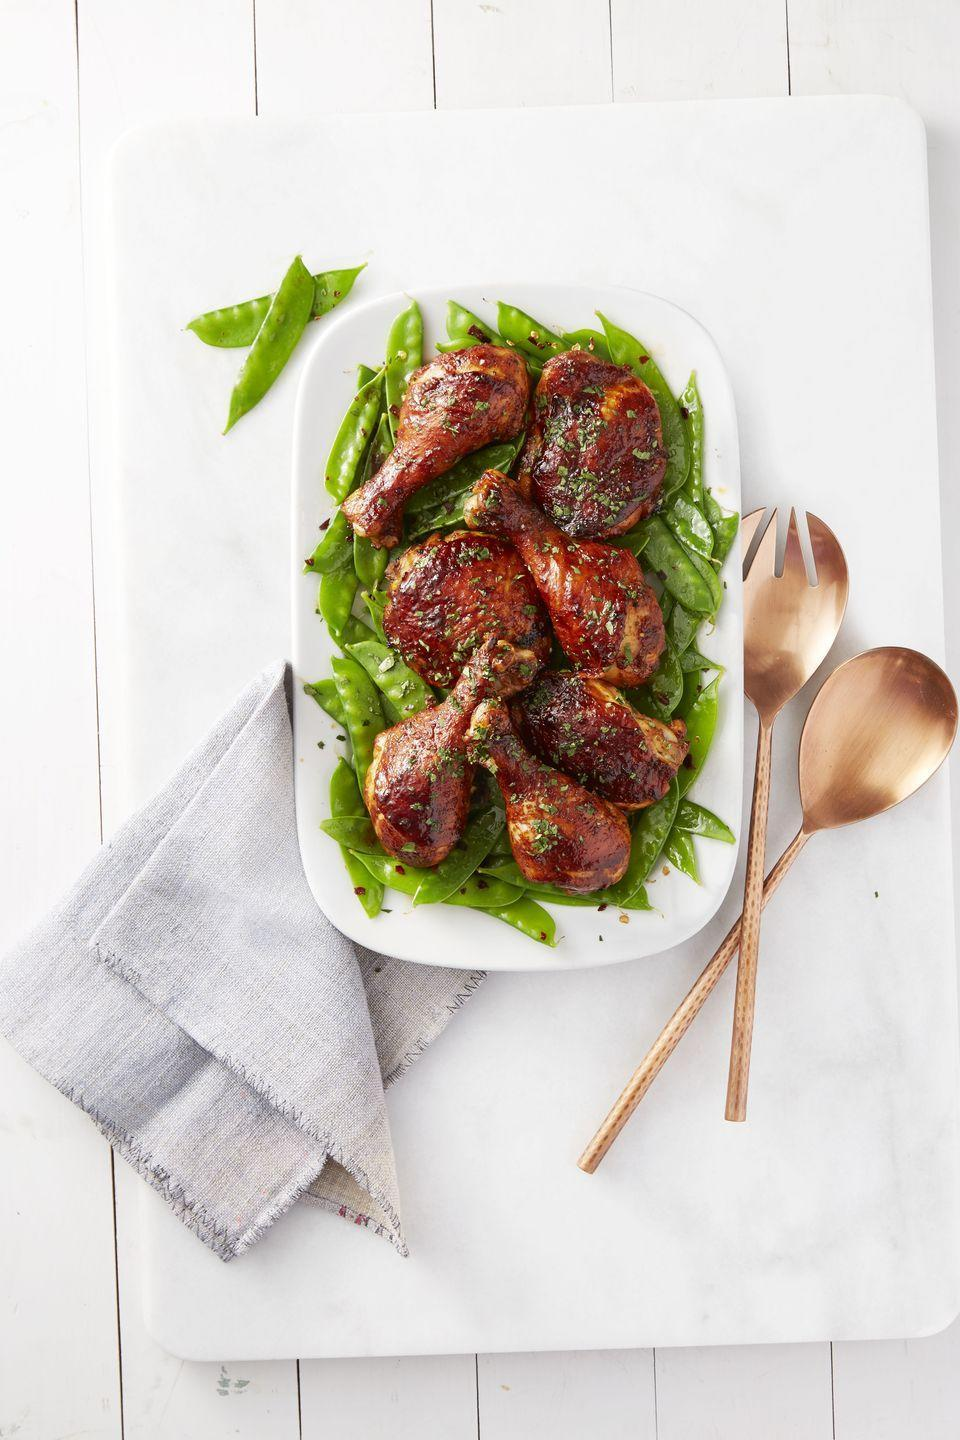 "<p>The messier the food, the tastier. Get the wet wipes out for this one. </p><p><em><a href=""https://www.goodhousekeeping.com/food-recipes/a38402/sweet-sticky-chicken-with-snow-peas-recipe/"" rel=""nofollow noopener"" target=""_blank"" data-ylk=""slk:Get the recipe for Sweet and Sticky Chicken With Snow Peas »"" class=""link rapid-noclick-resp"">Get the recipe for Sweet and Sticky Chicken With Snow Peas »</a></em></p>"